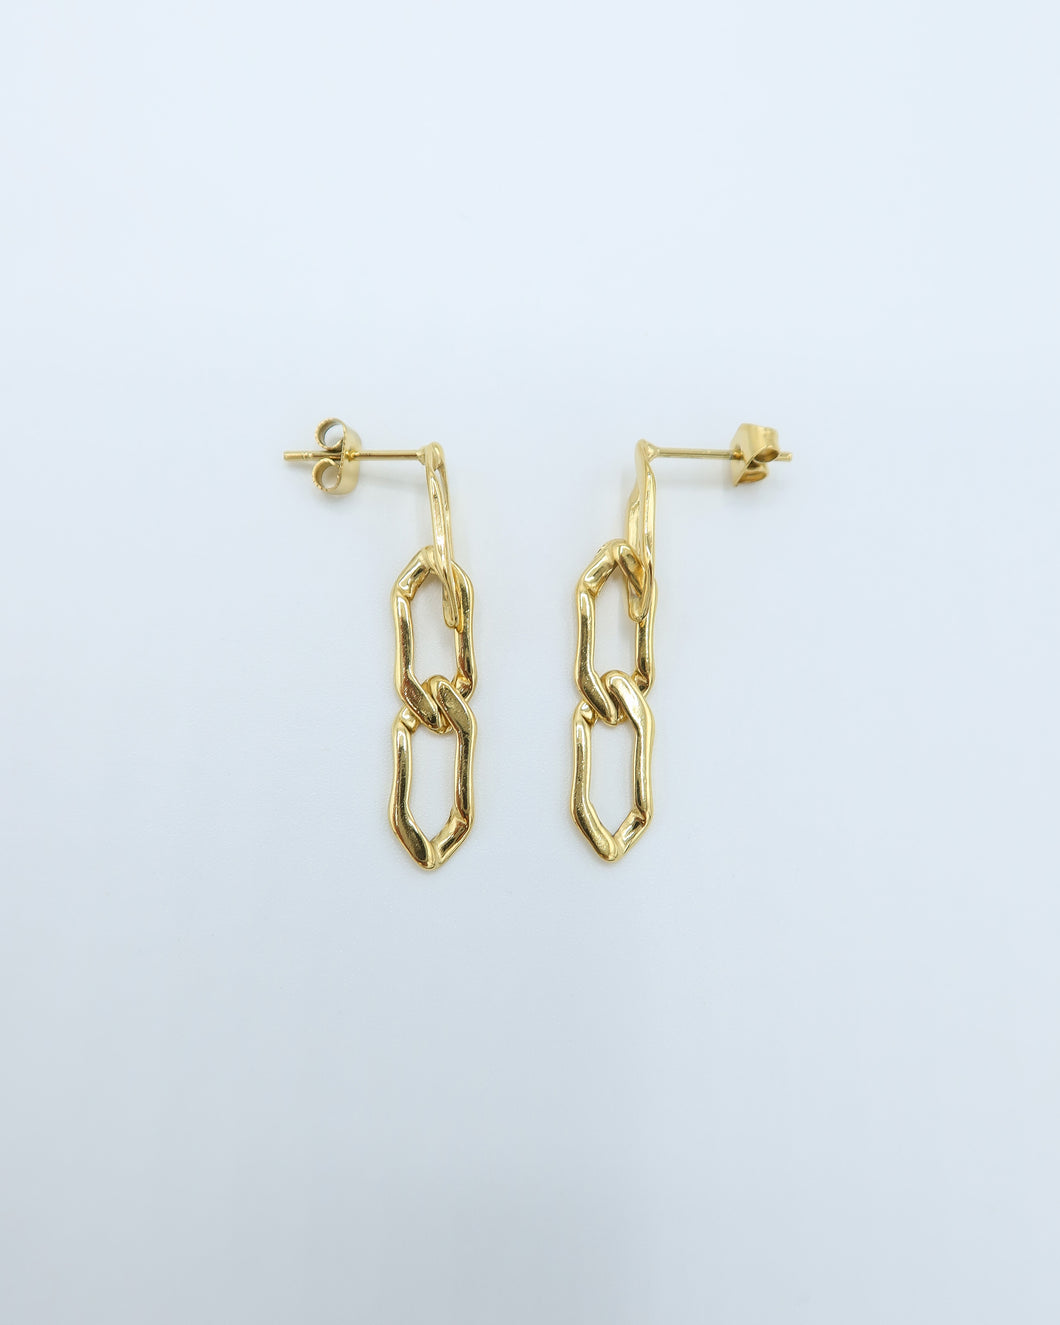 Rachel Chain Earrings